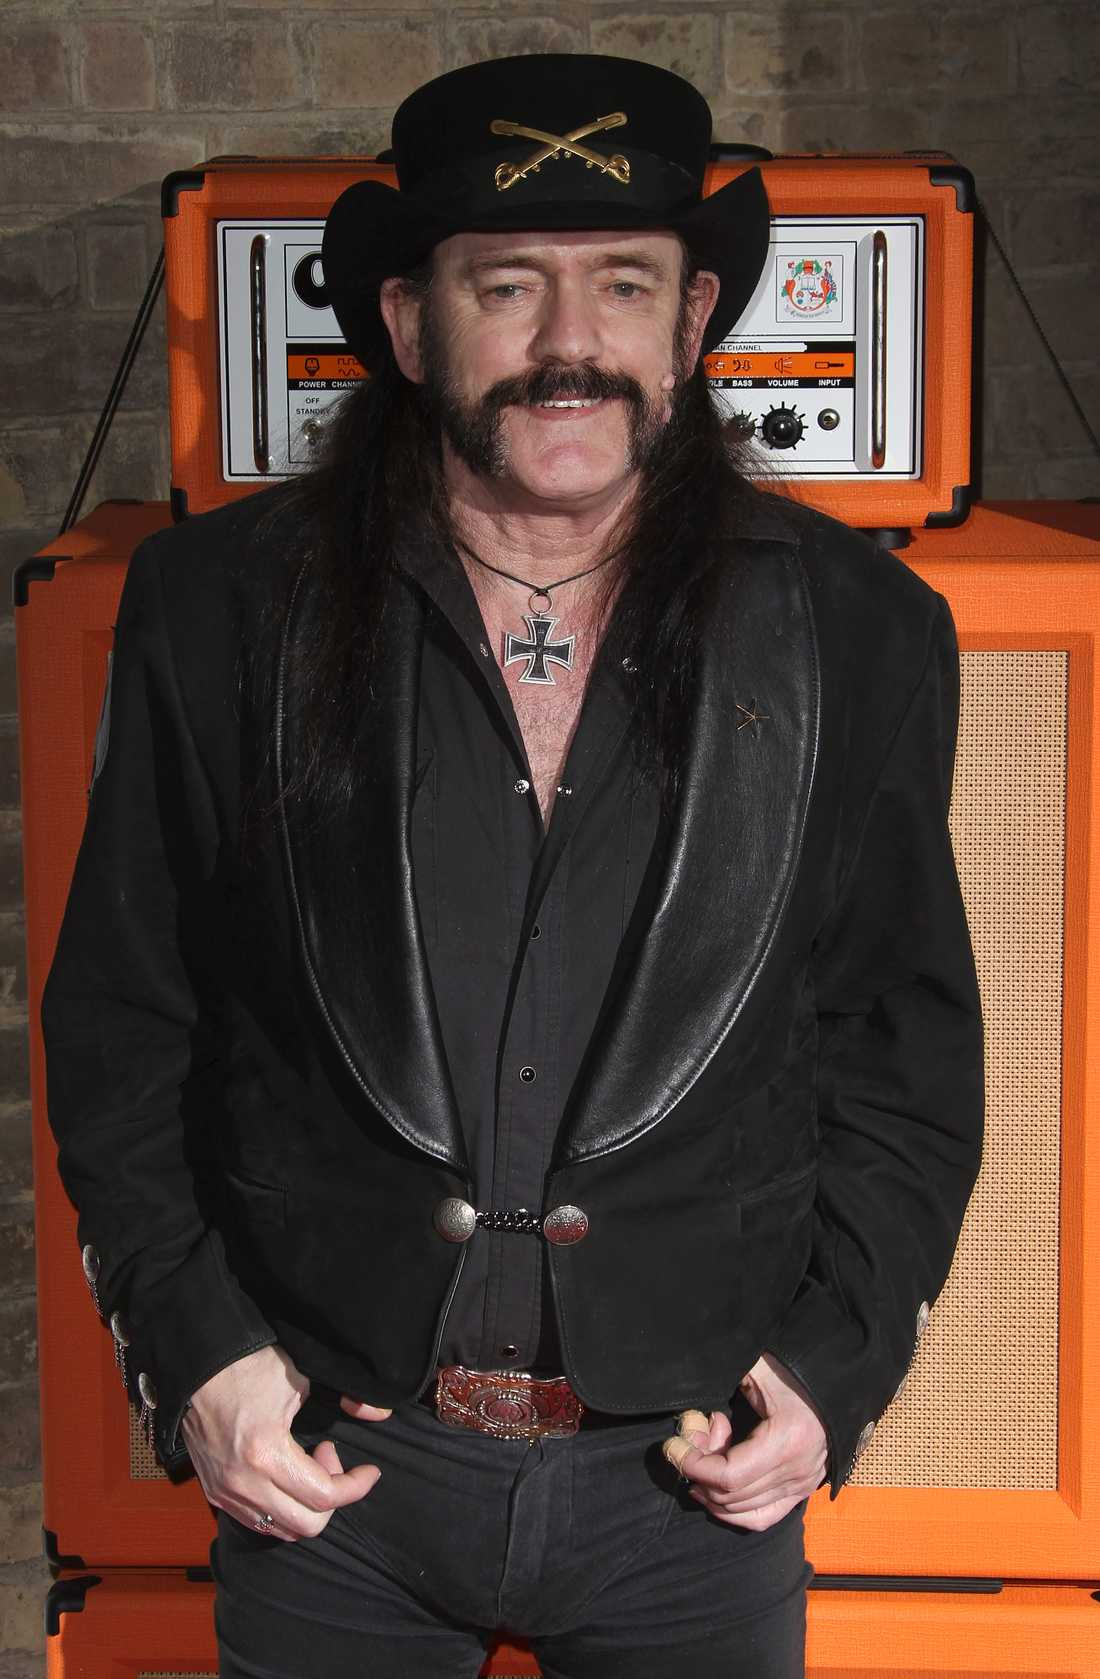 Lemmy Kilmister, Motörhead vid Classic Rock Roll Of Honour Awards i London 2012.